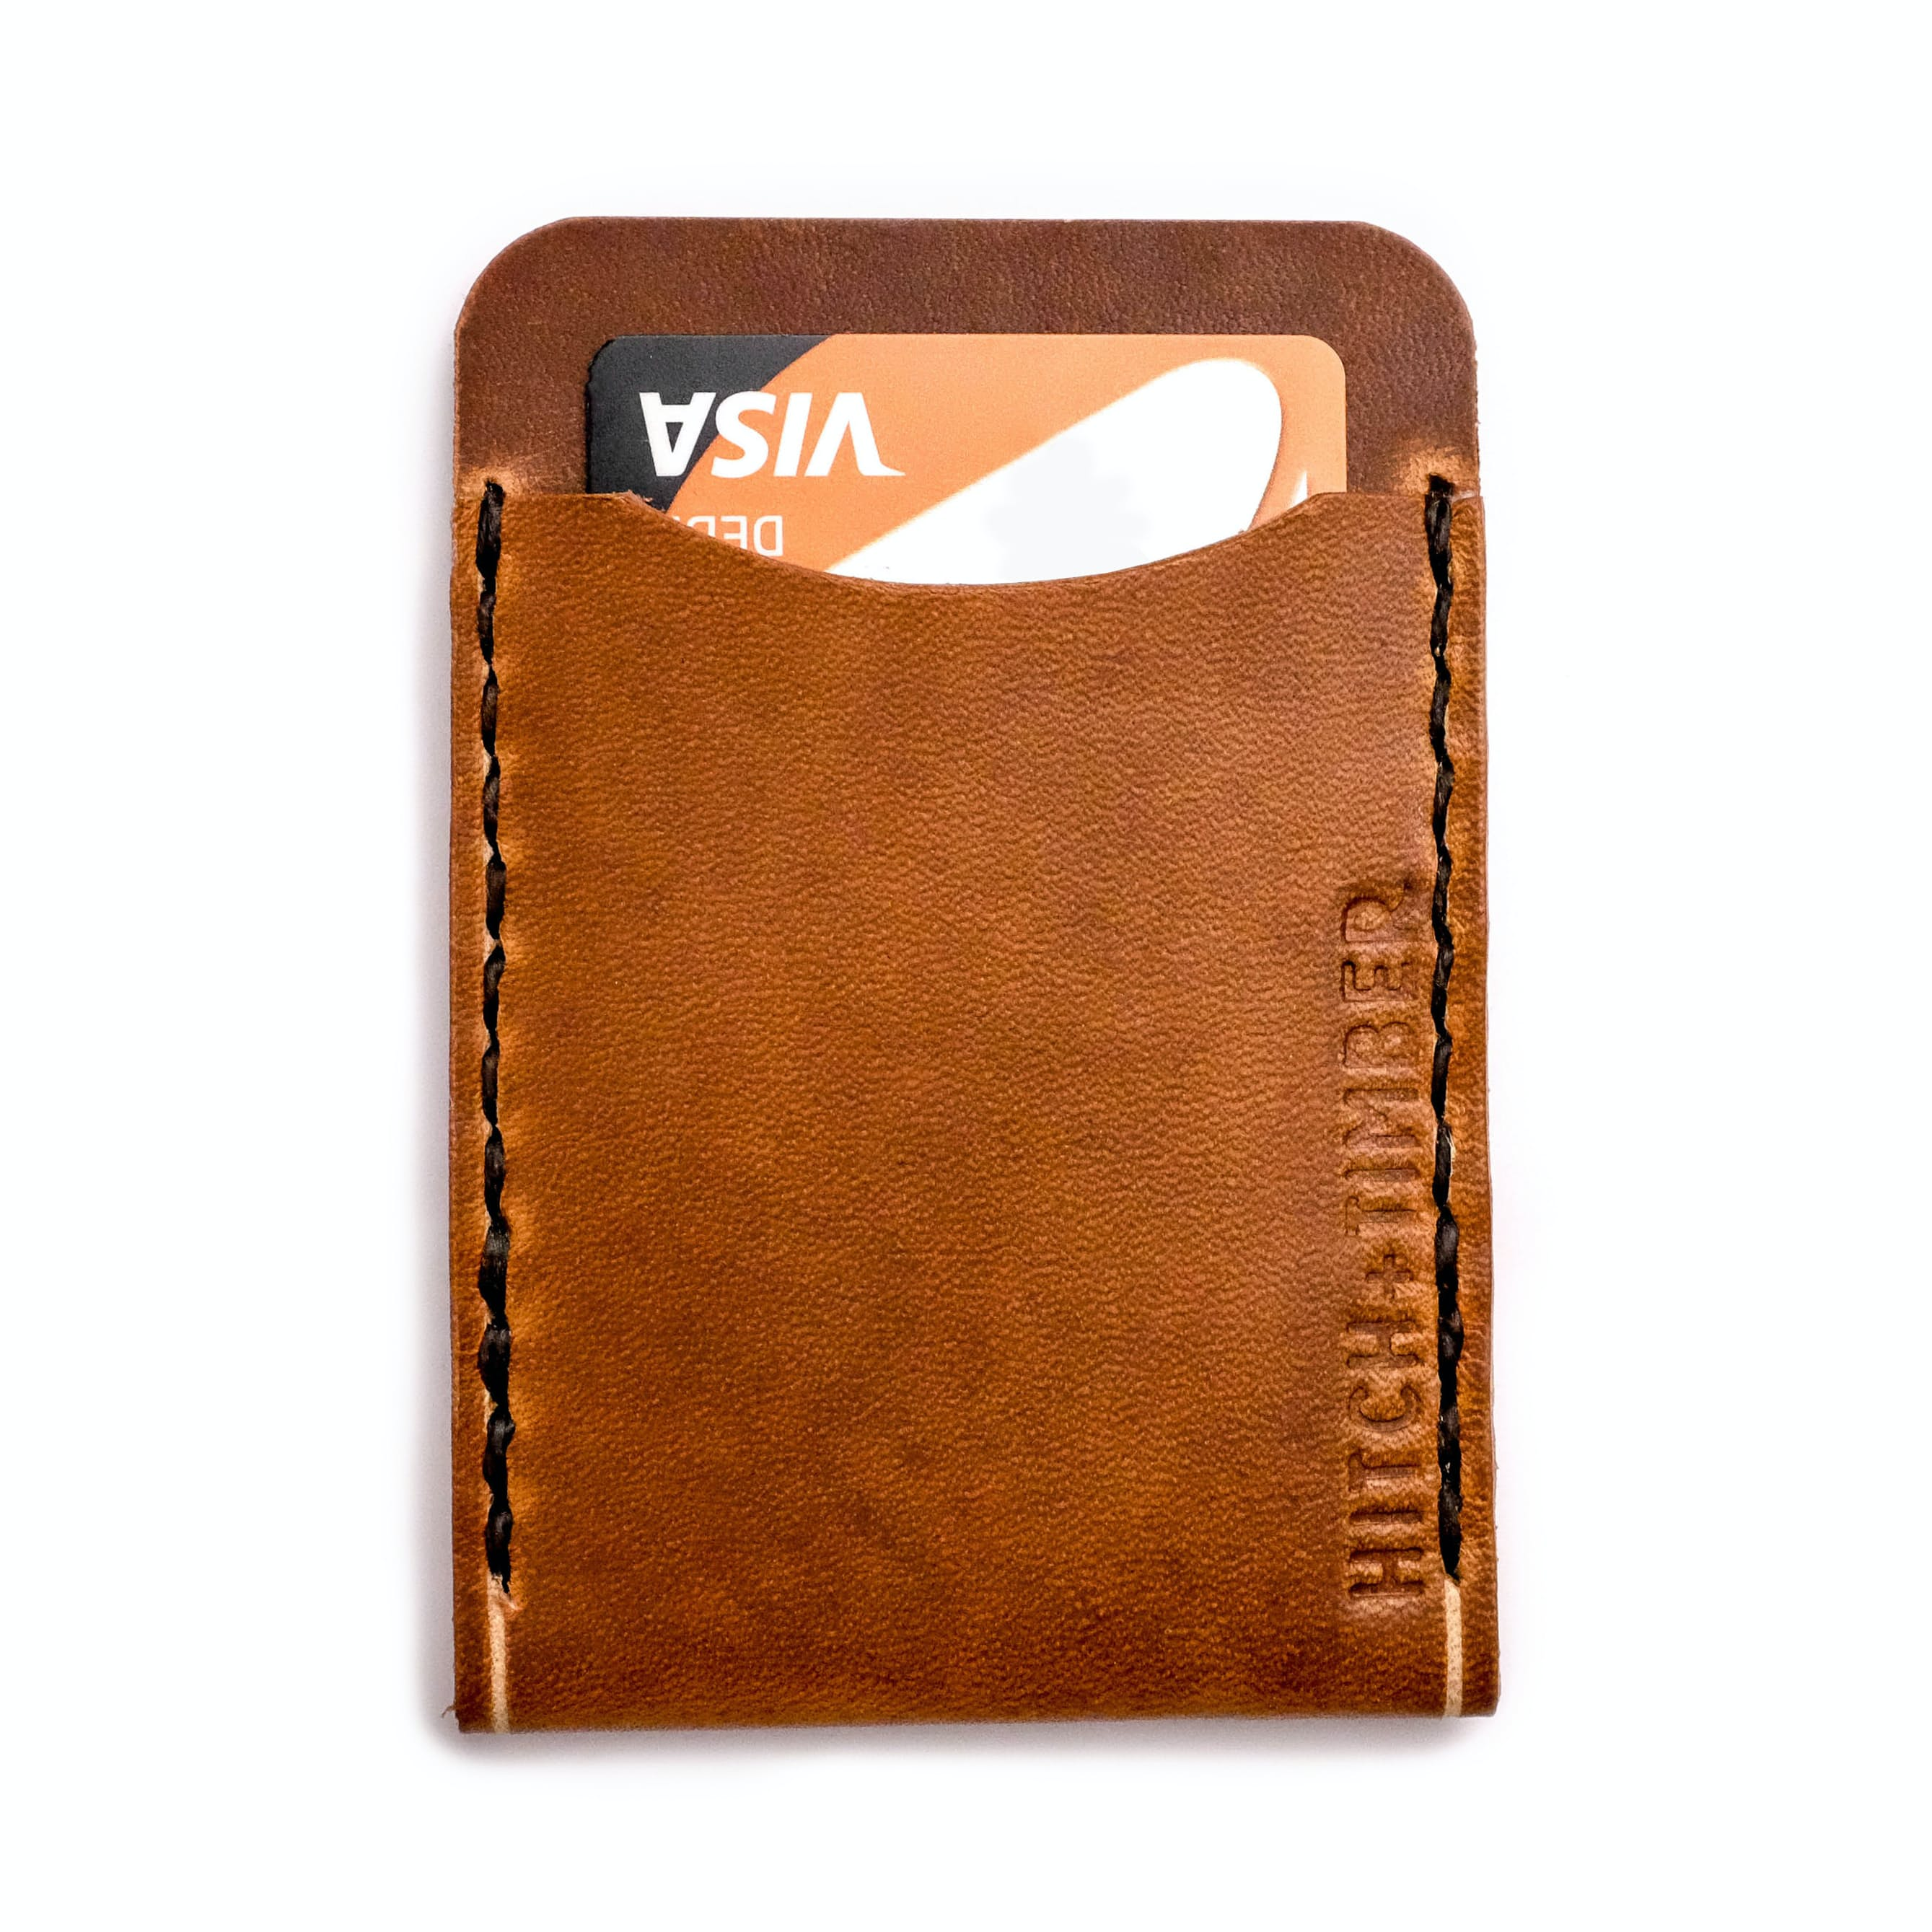 Oy7l06wuio hitch timber flat jacket wallet 0 original